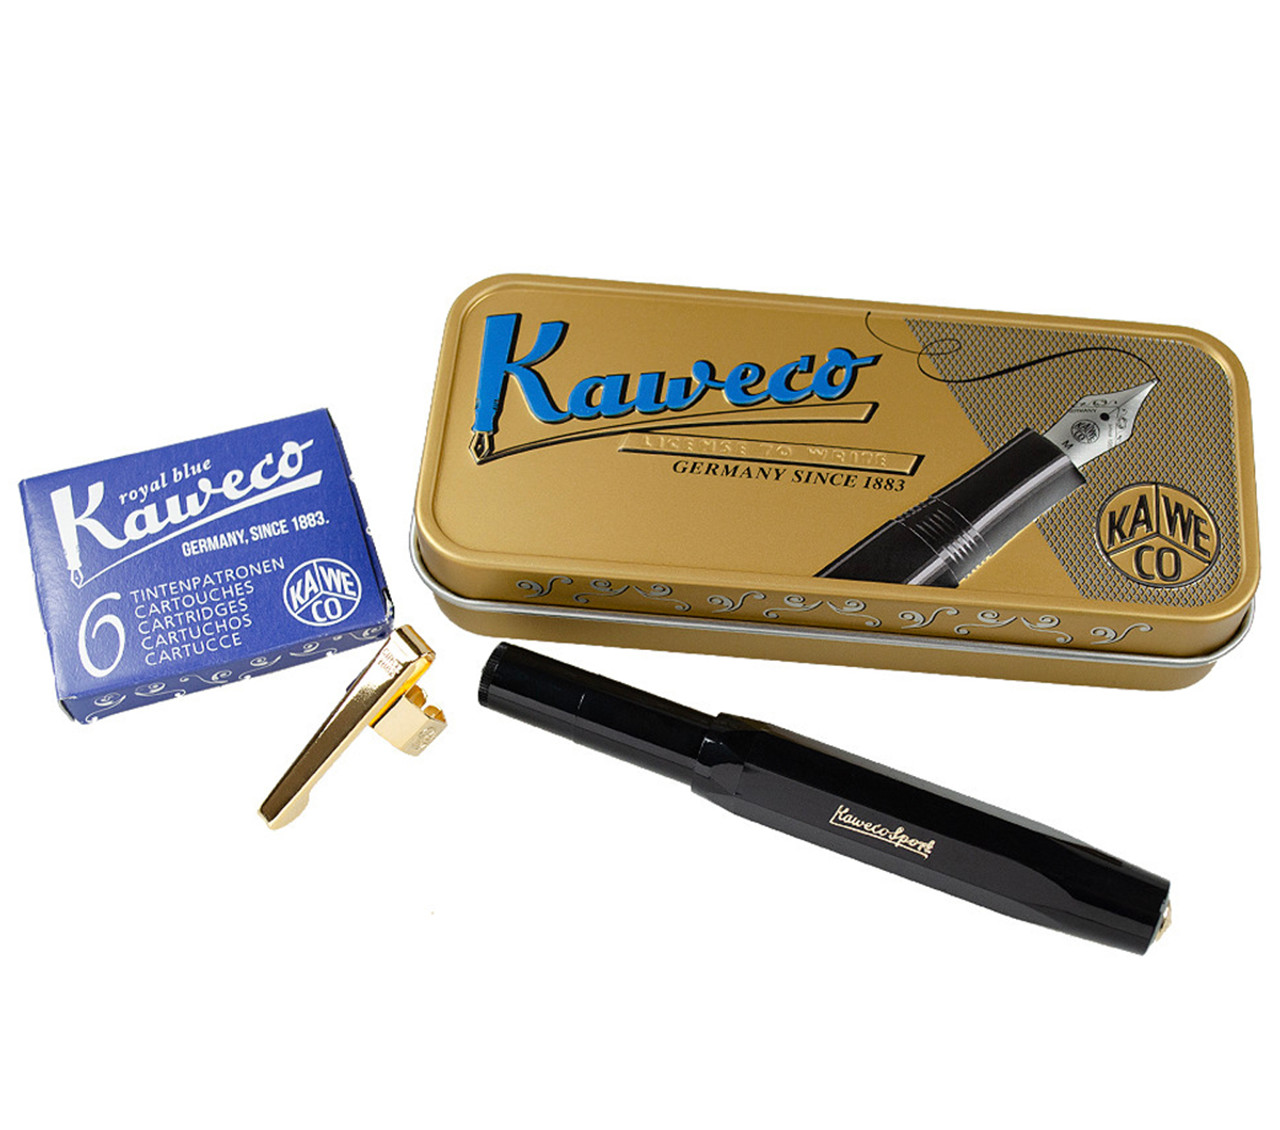 Kaweco Sport fountain pen gift set